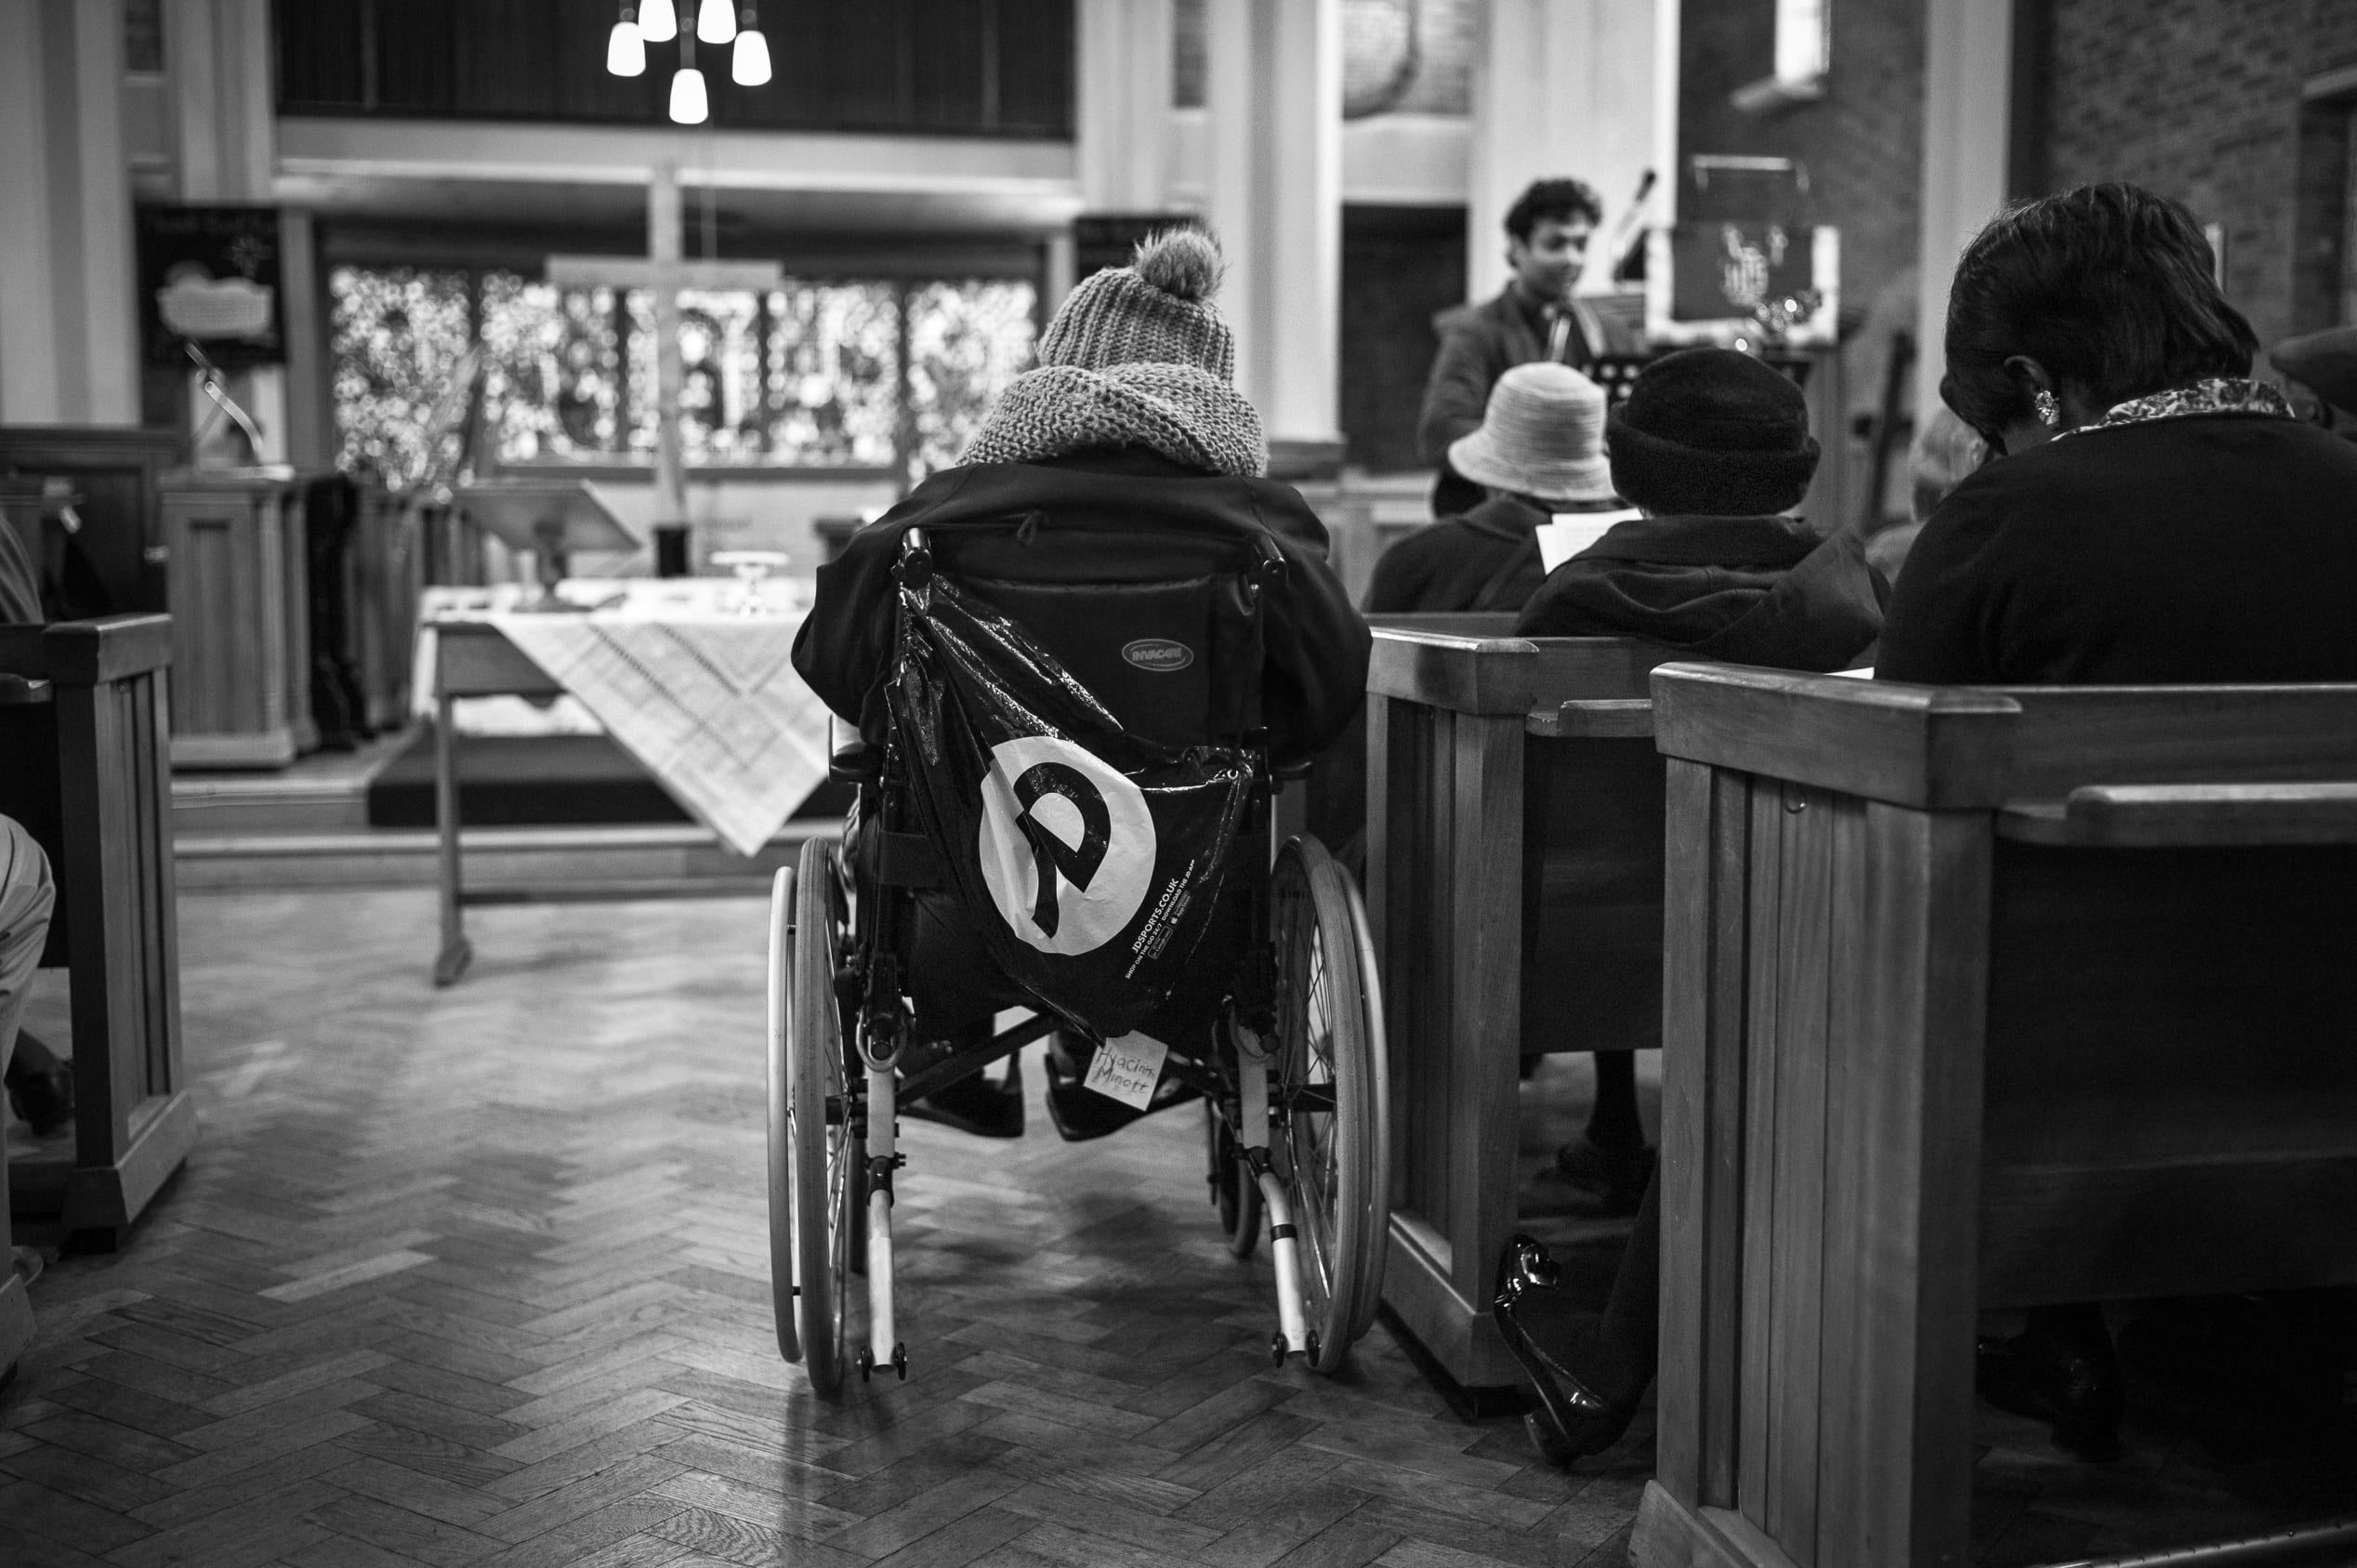 Service for Day Centre visitors